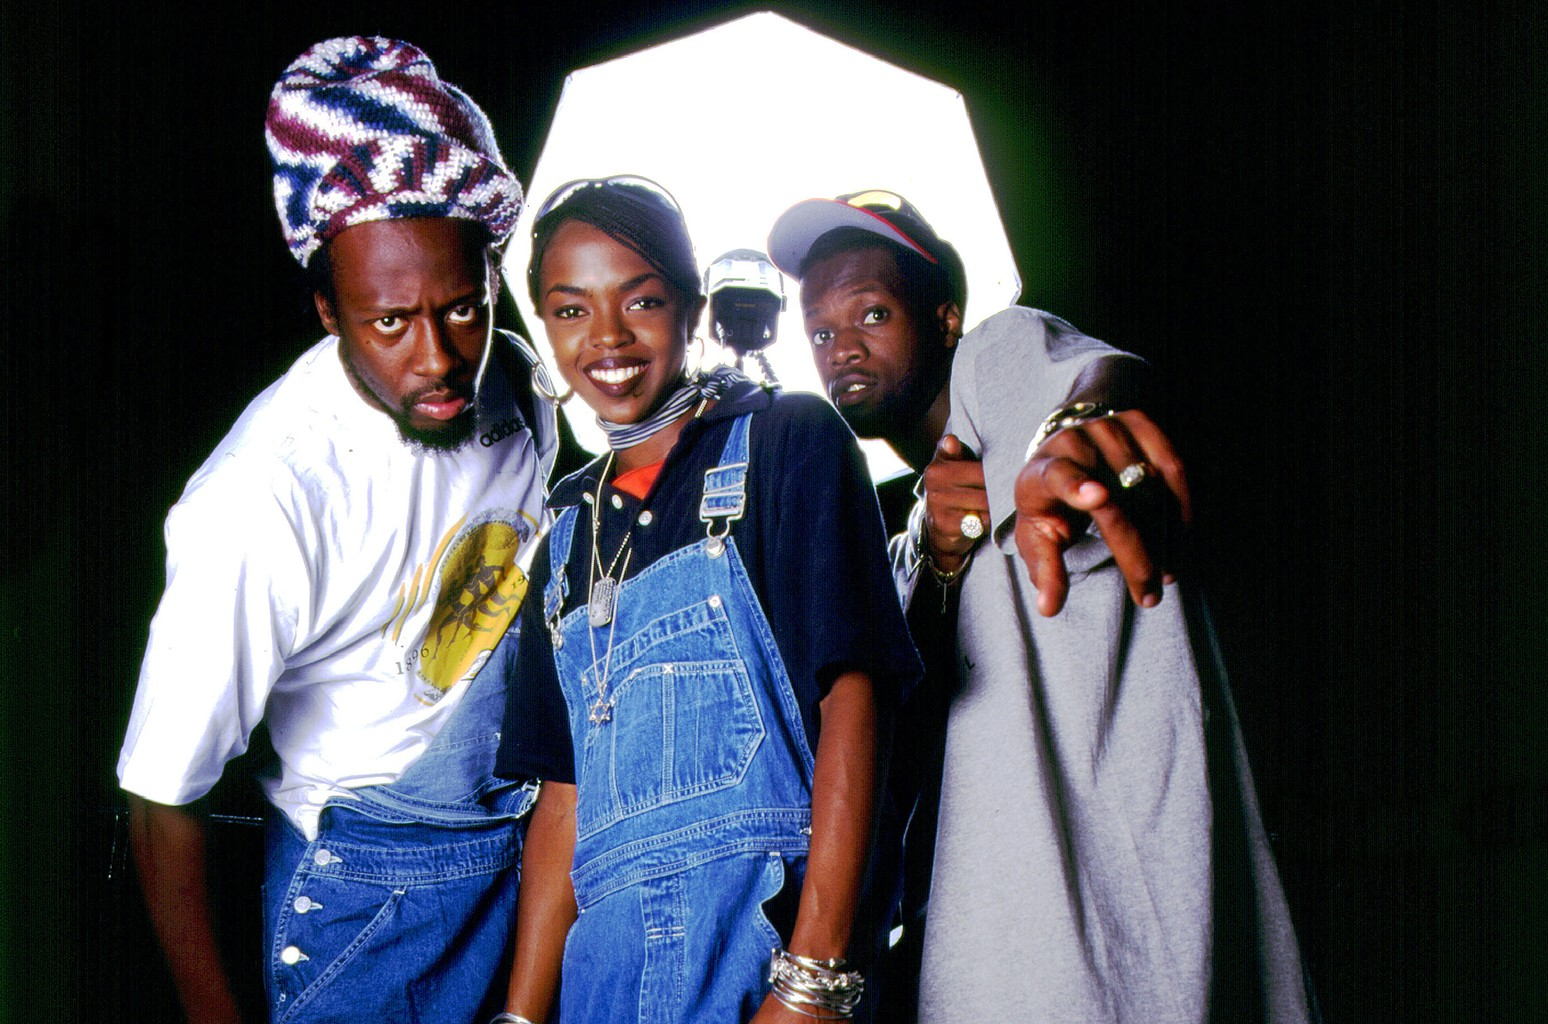 Wyclef Jean, Lauryn Hill and Praz of the Fugees photographed on Aug. 16, 1996 in Chicago.